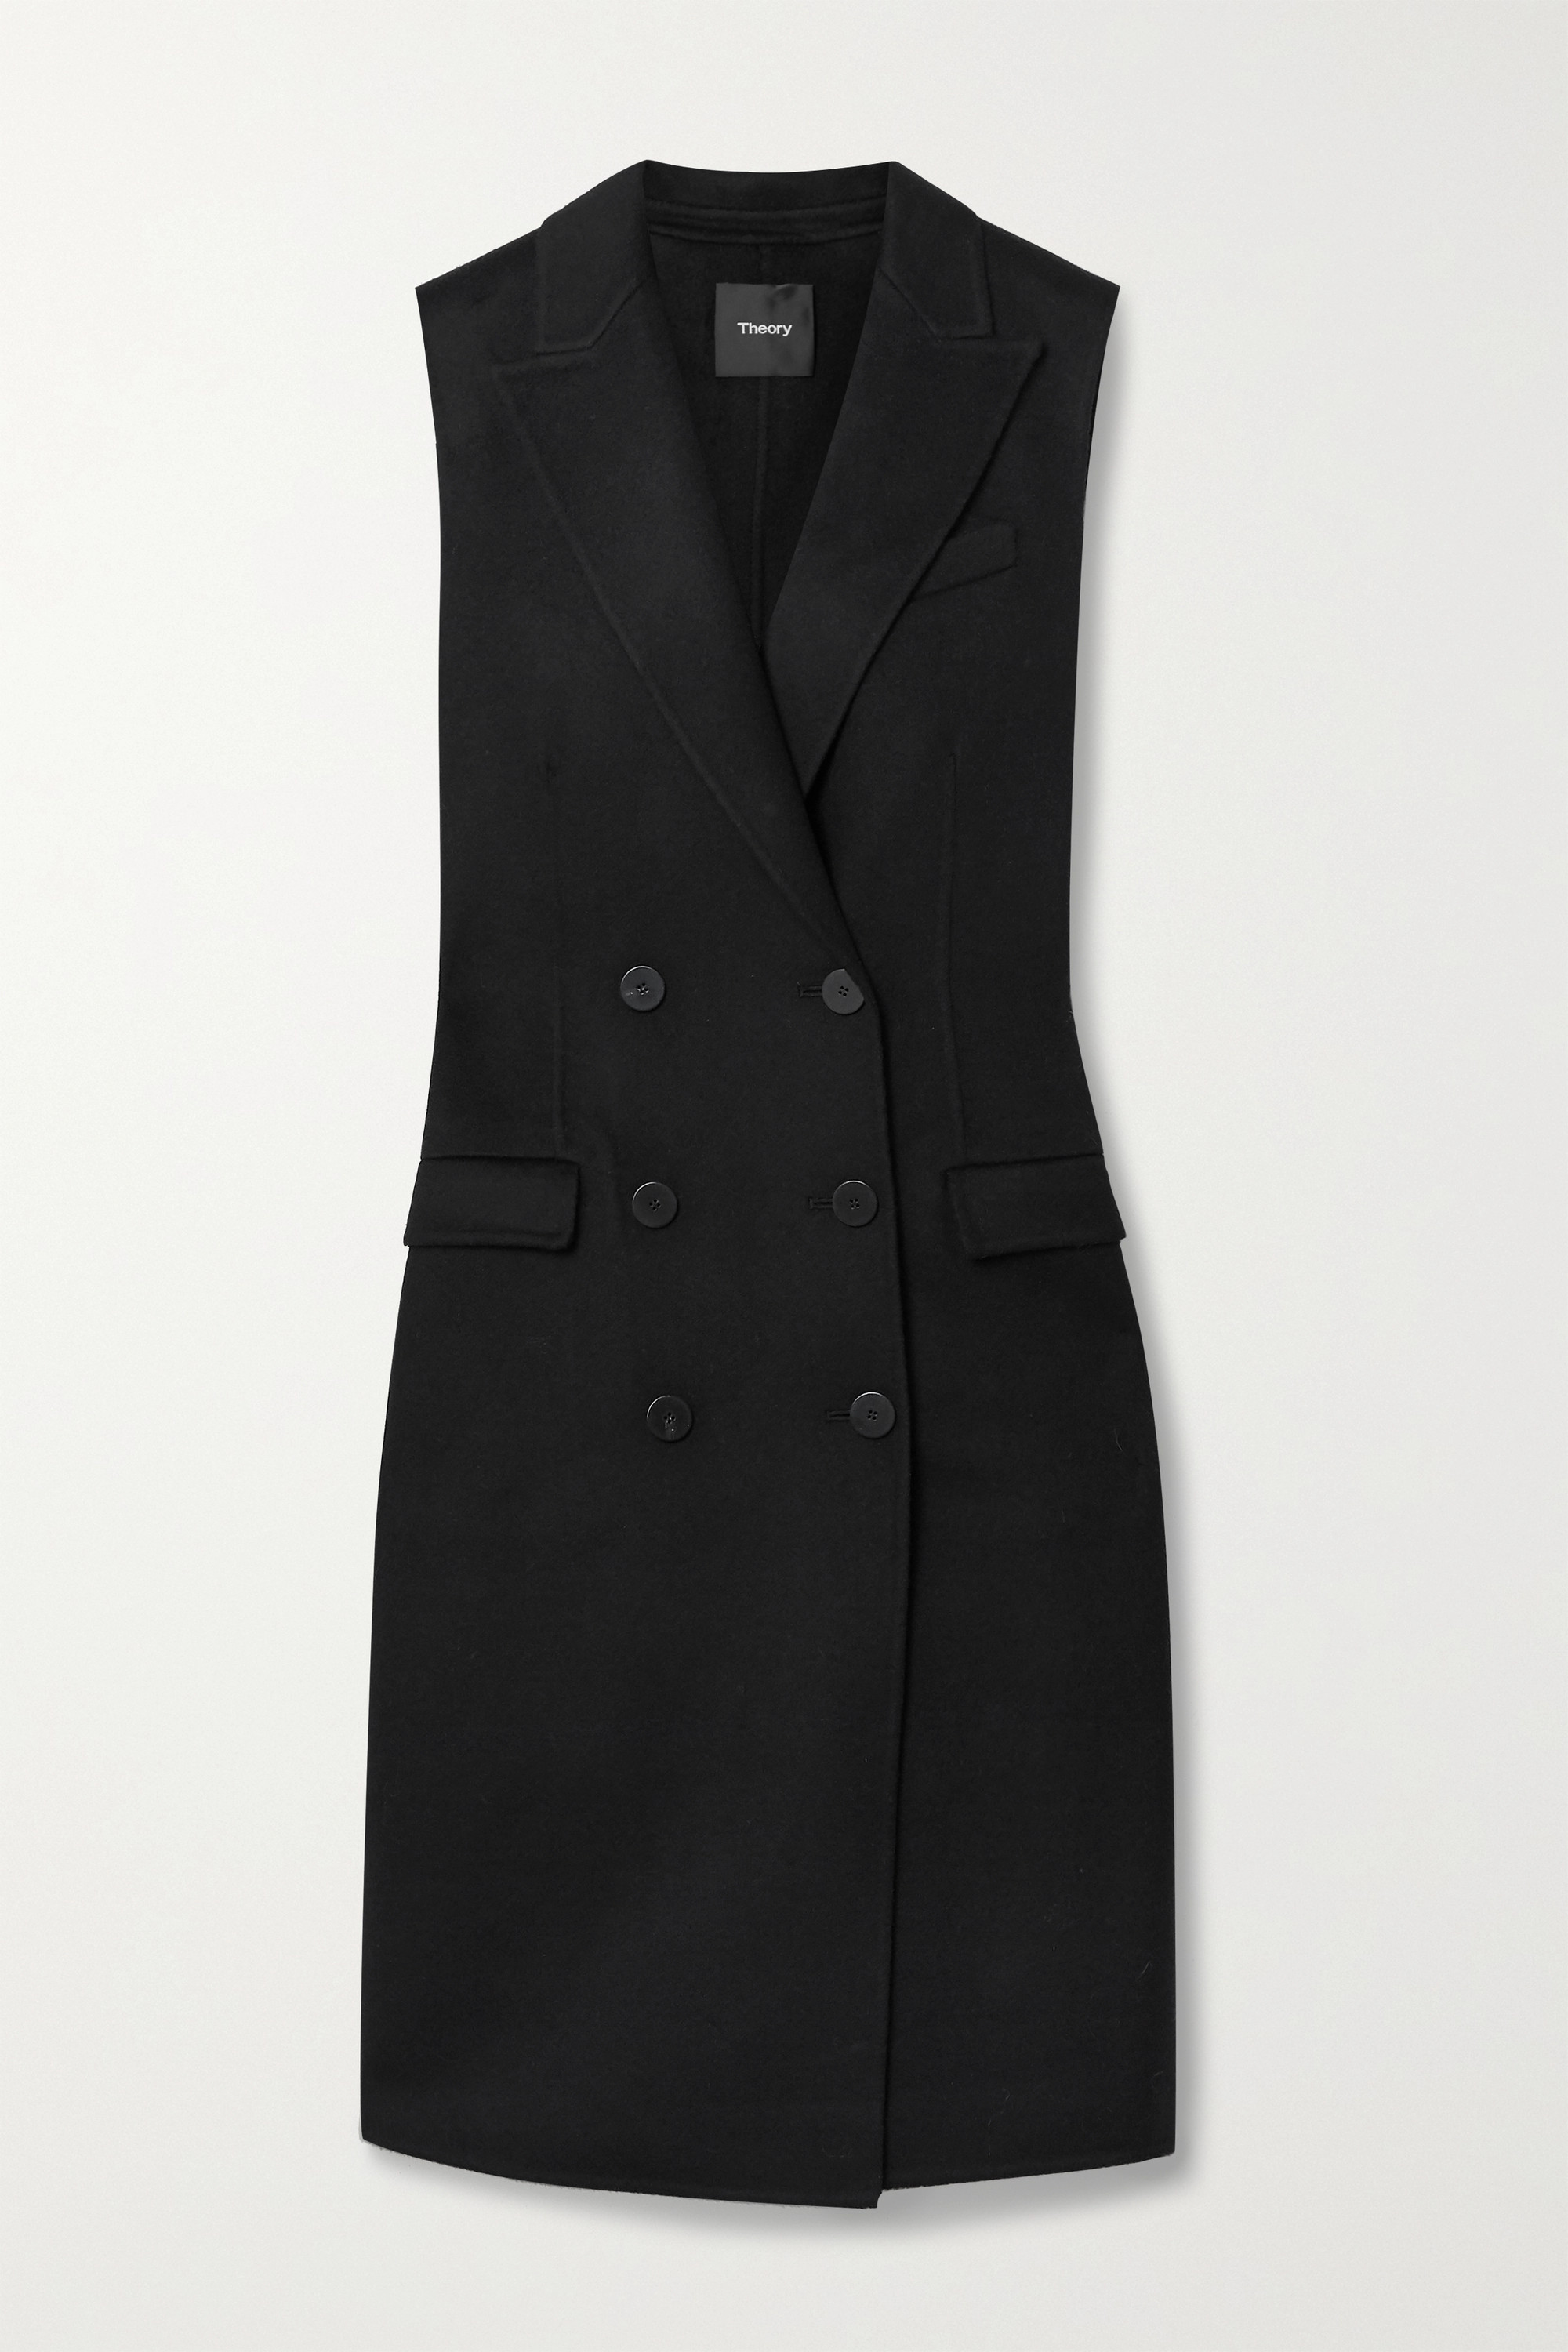 Theory Double-breasted wool and cashmere-blend felt vest